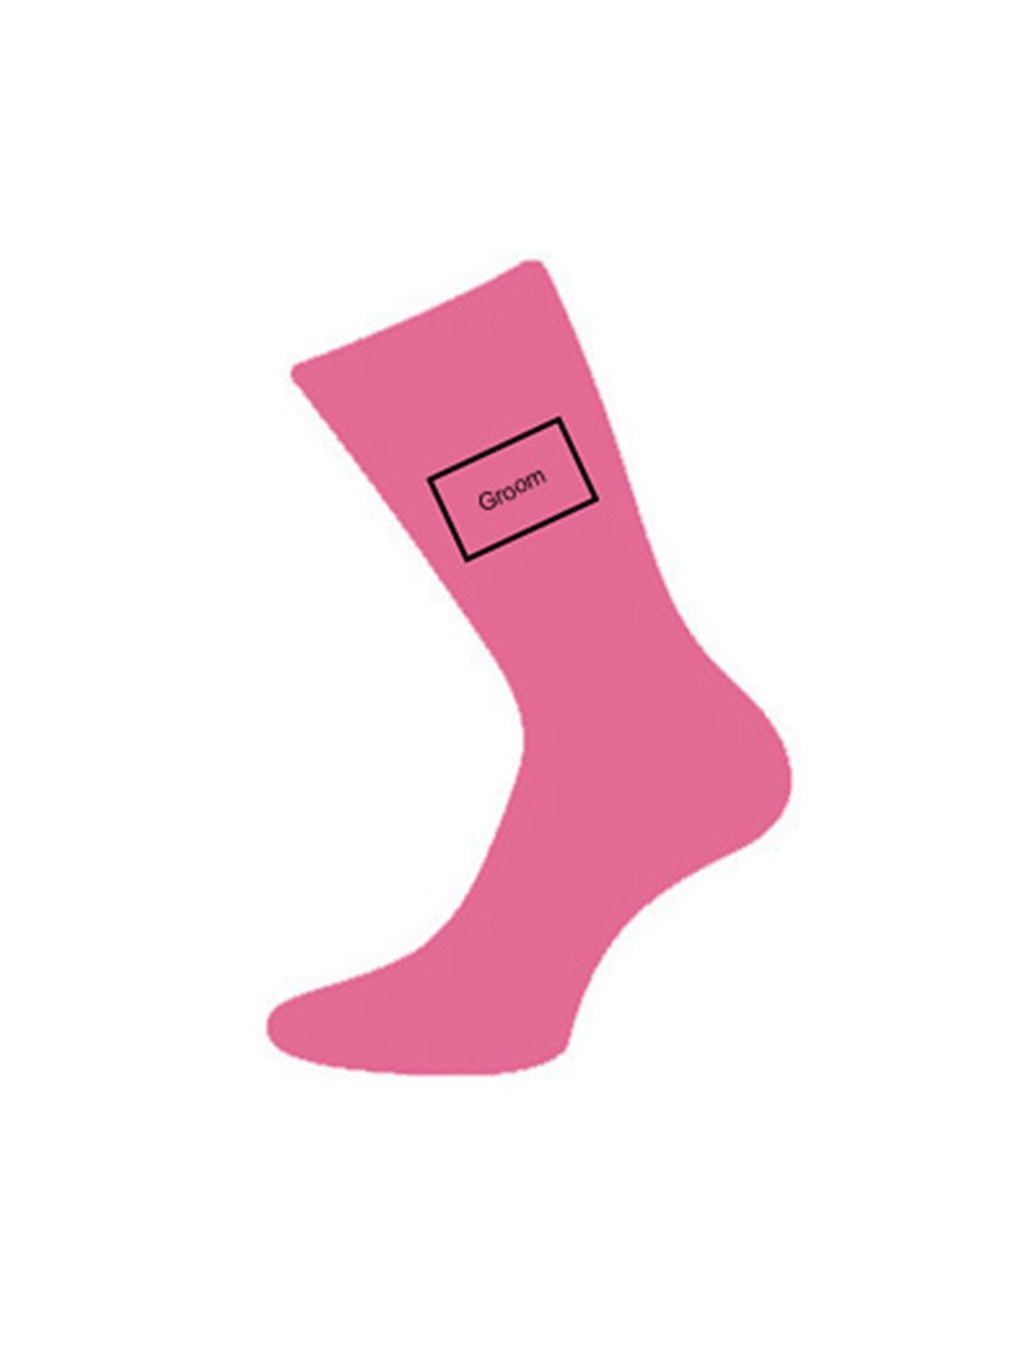 wedding socks for groom pink